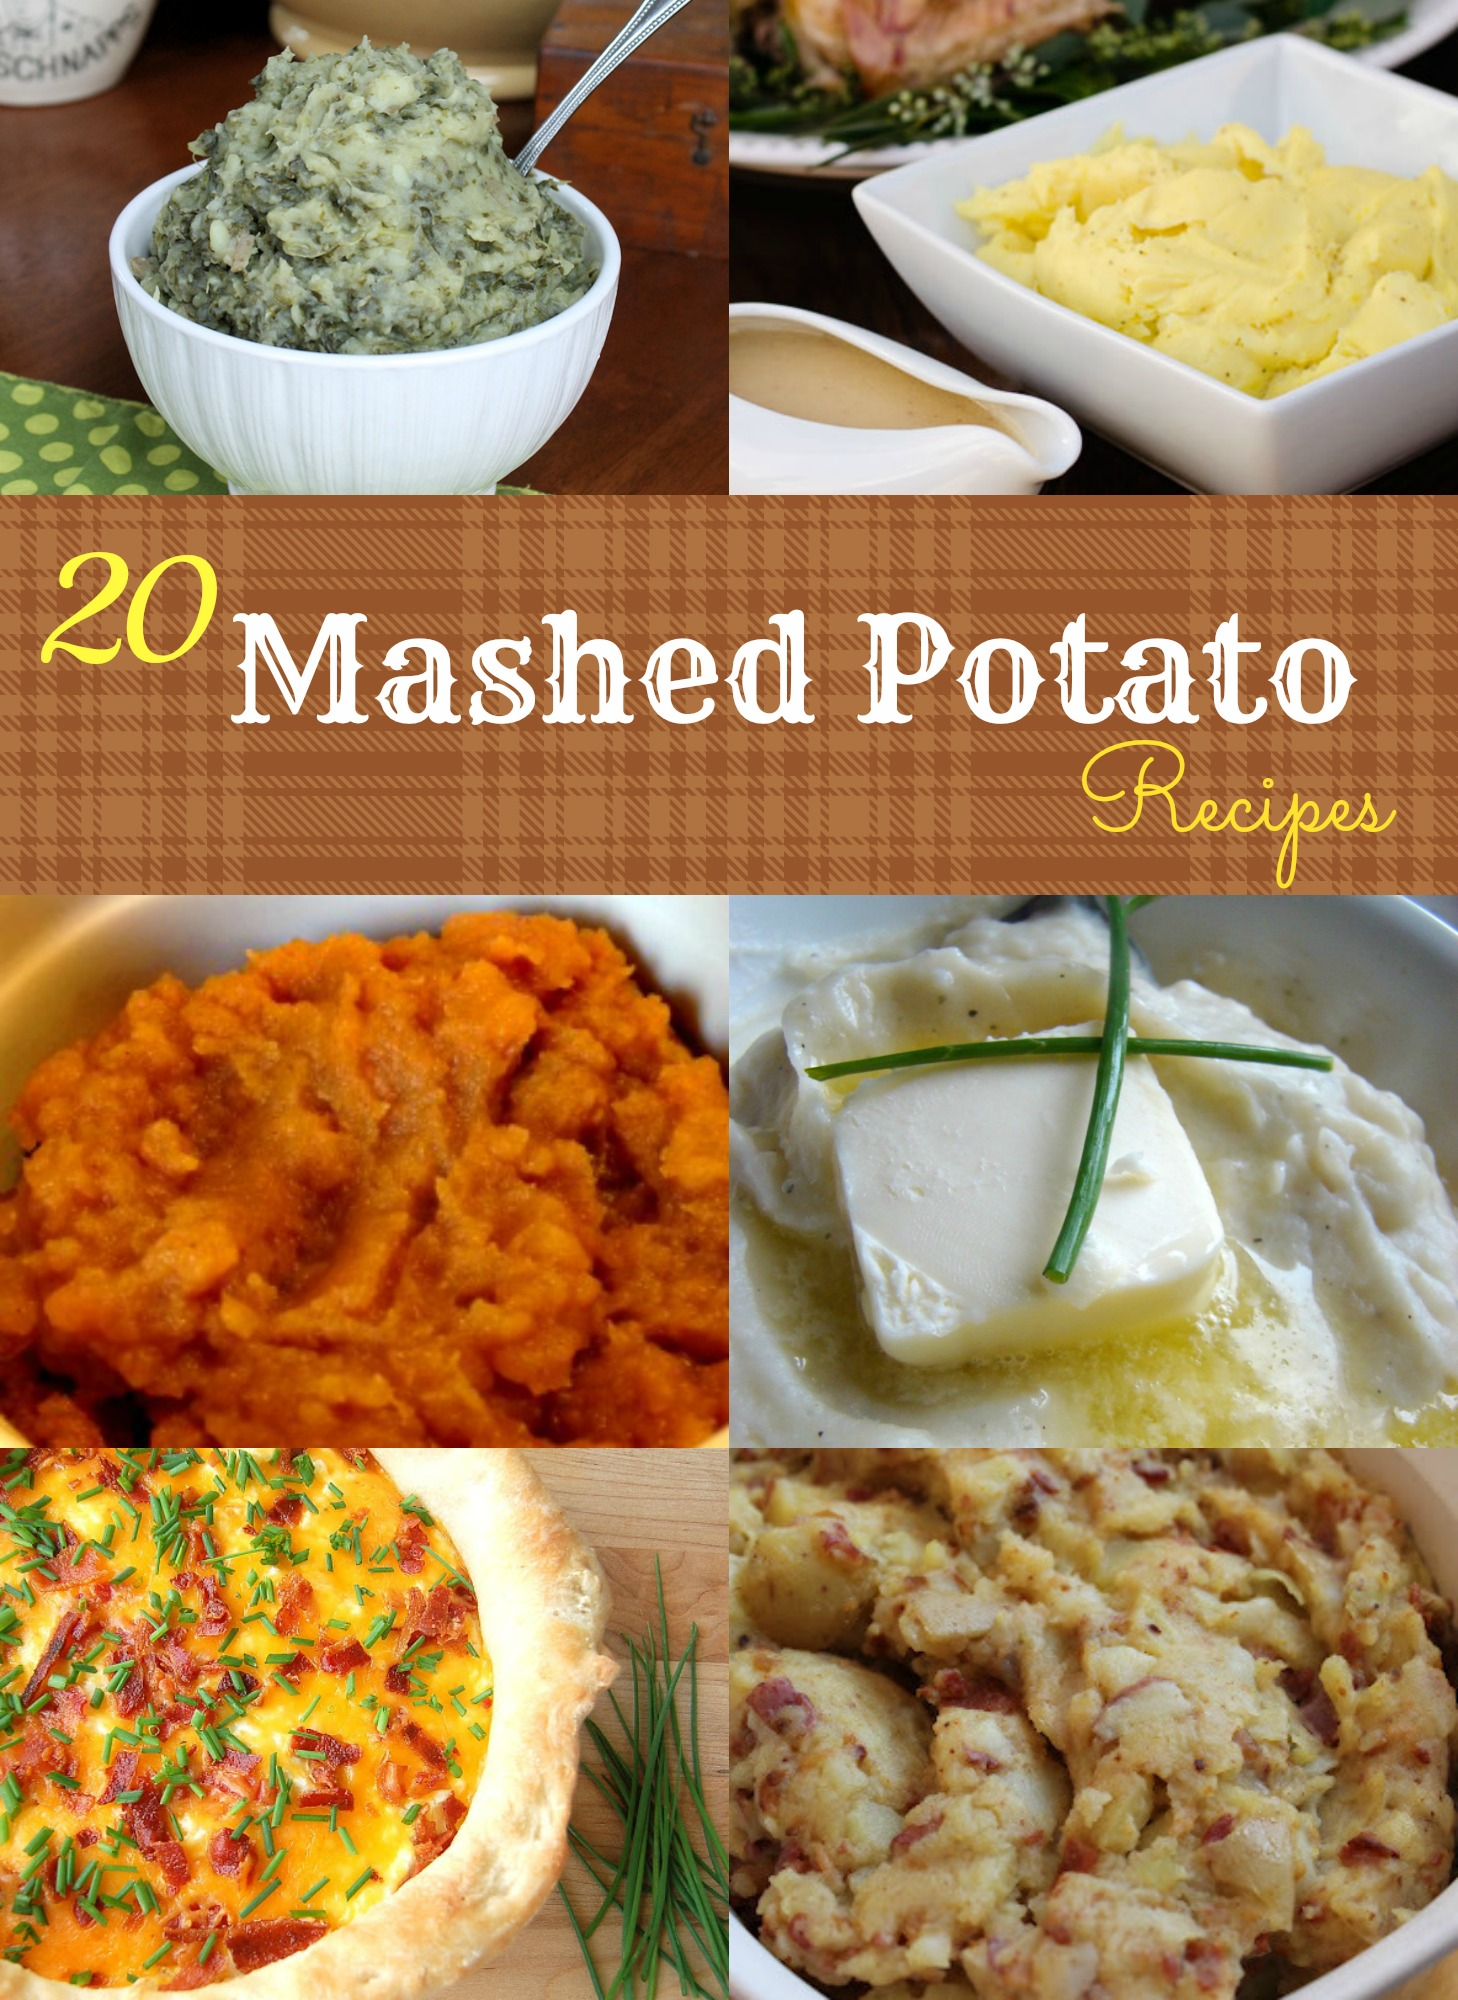 20 Mashed Potato Recipes